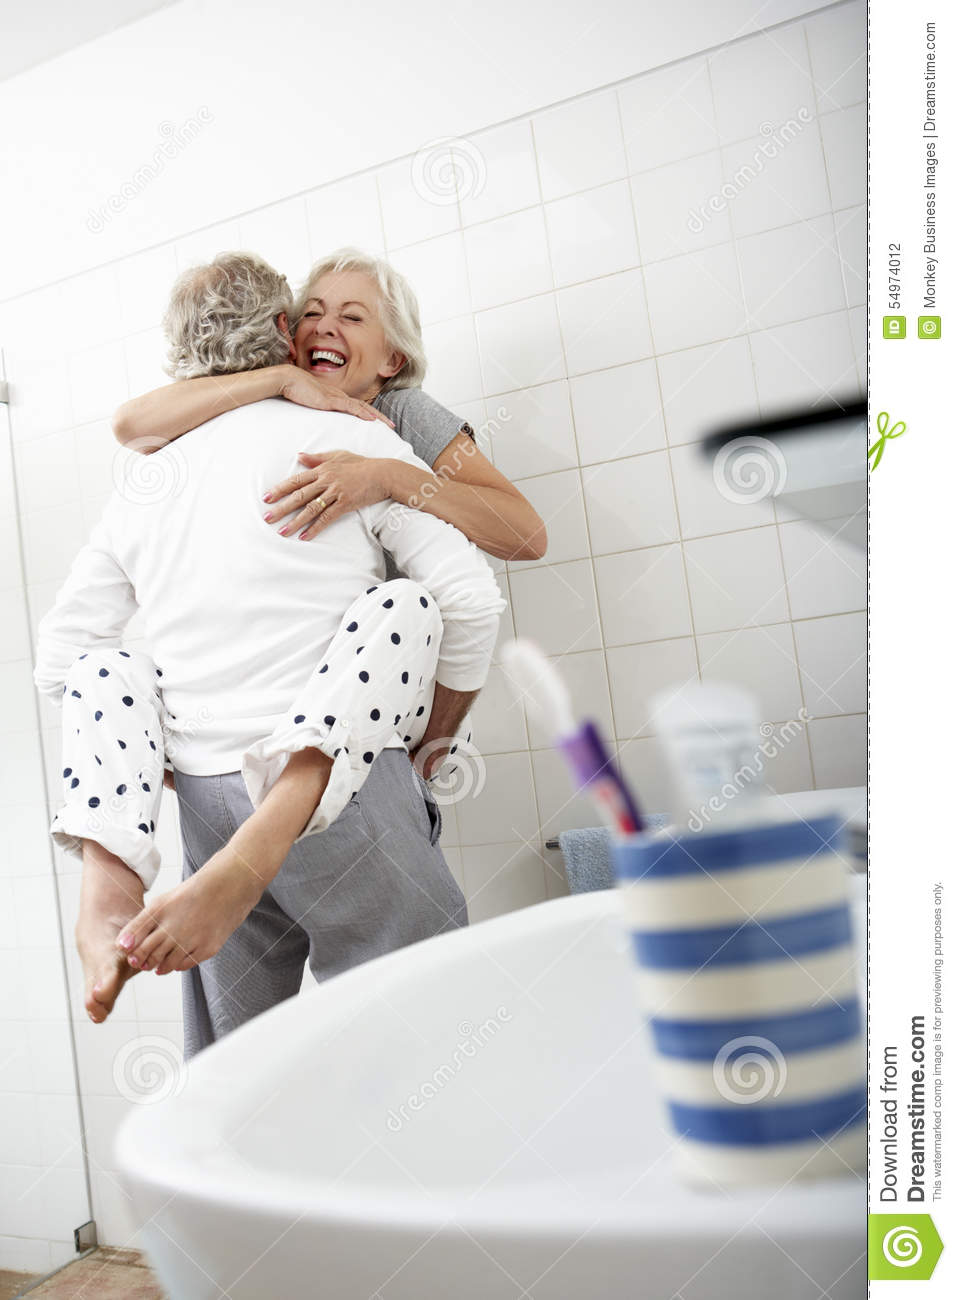 Romantic Senior Couple In Bathroom Romance Passion